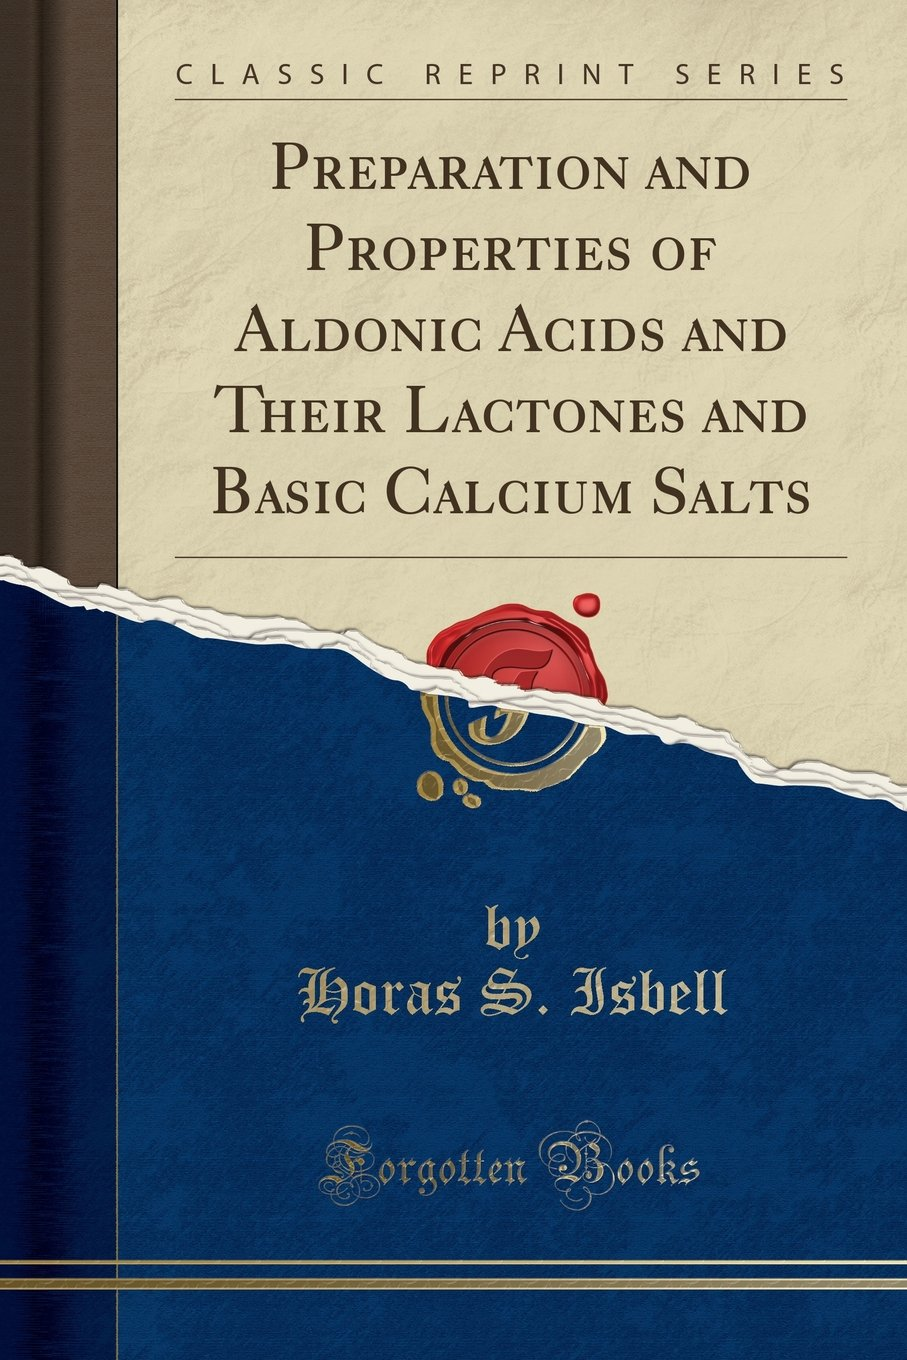 Read Online Preparation and Properties of Aldonic Acids and Their Lactones and Basic Calcium Salts (Classic Reprint) PDF